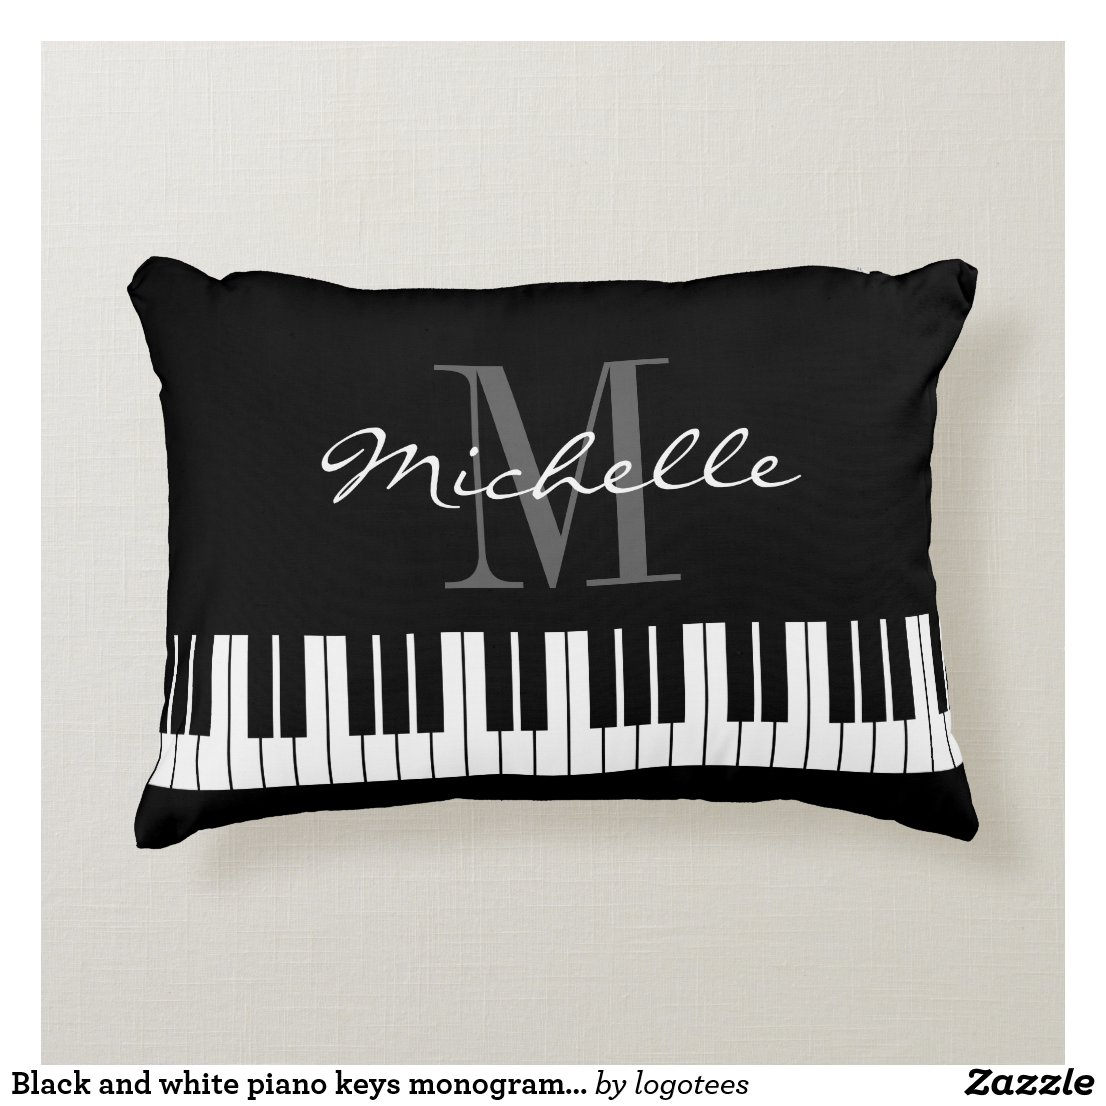 Black and white piano keys monogram pillow